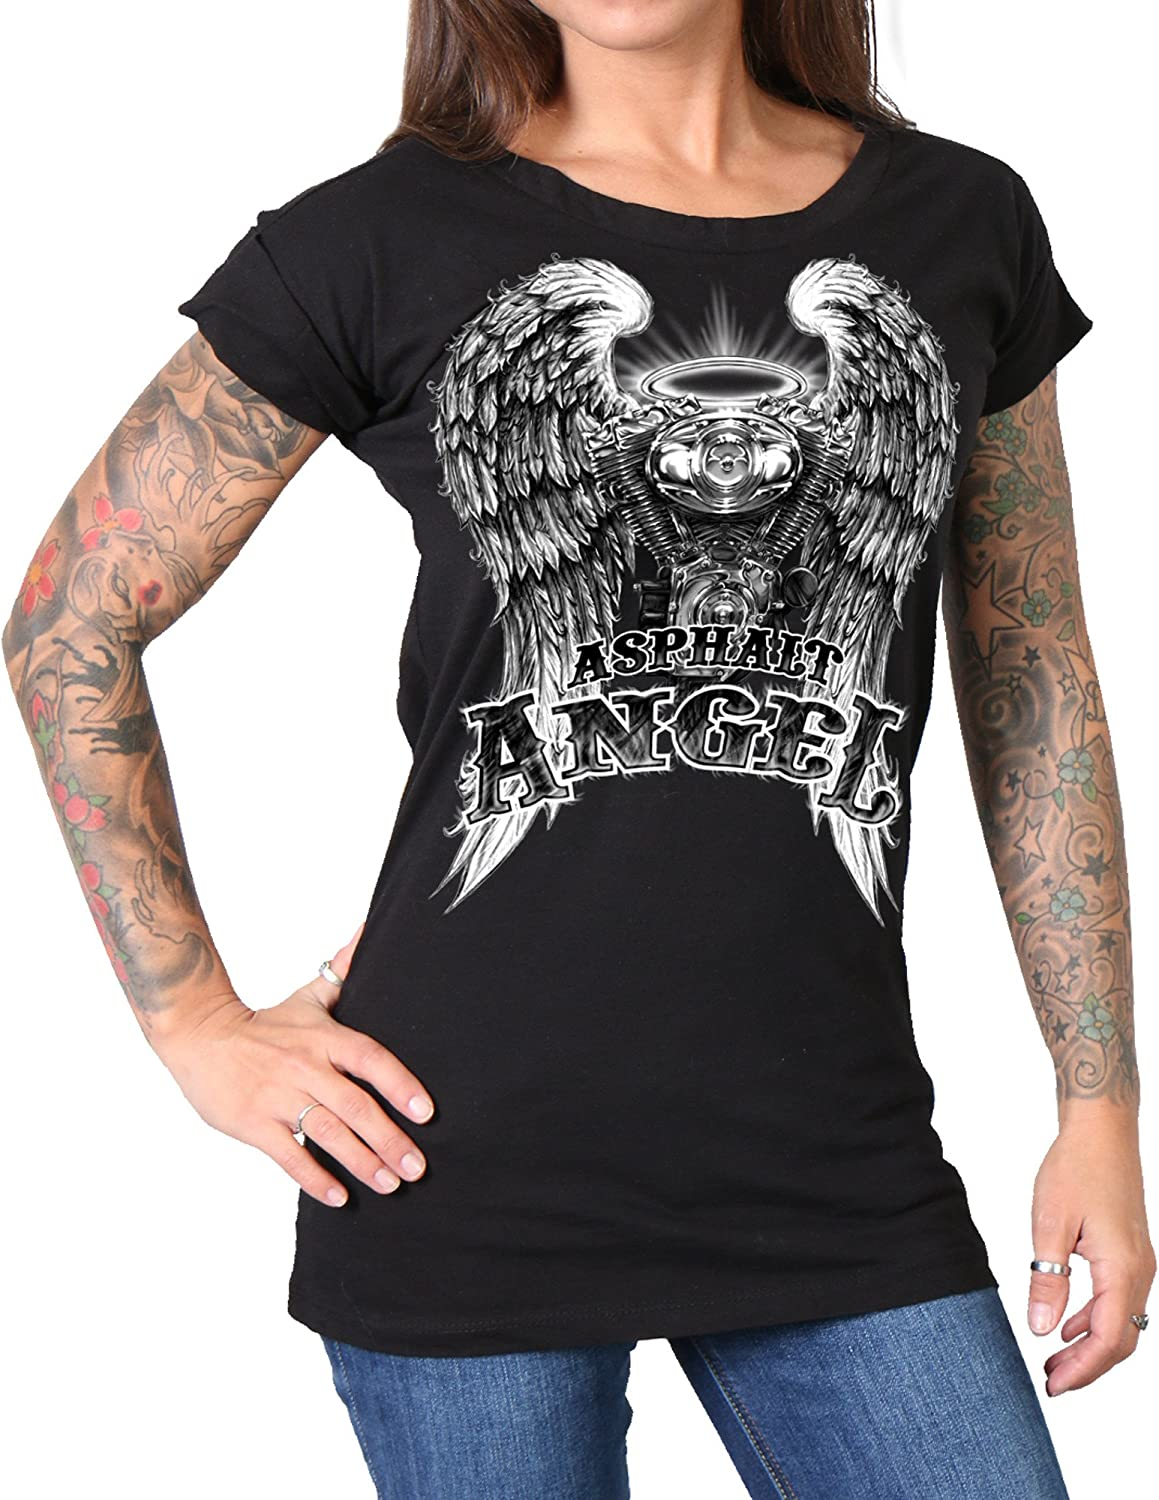 Heather Red, Large Hot Leathers Sparkle Wings Womens V-Neck Biker T-Shirt